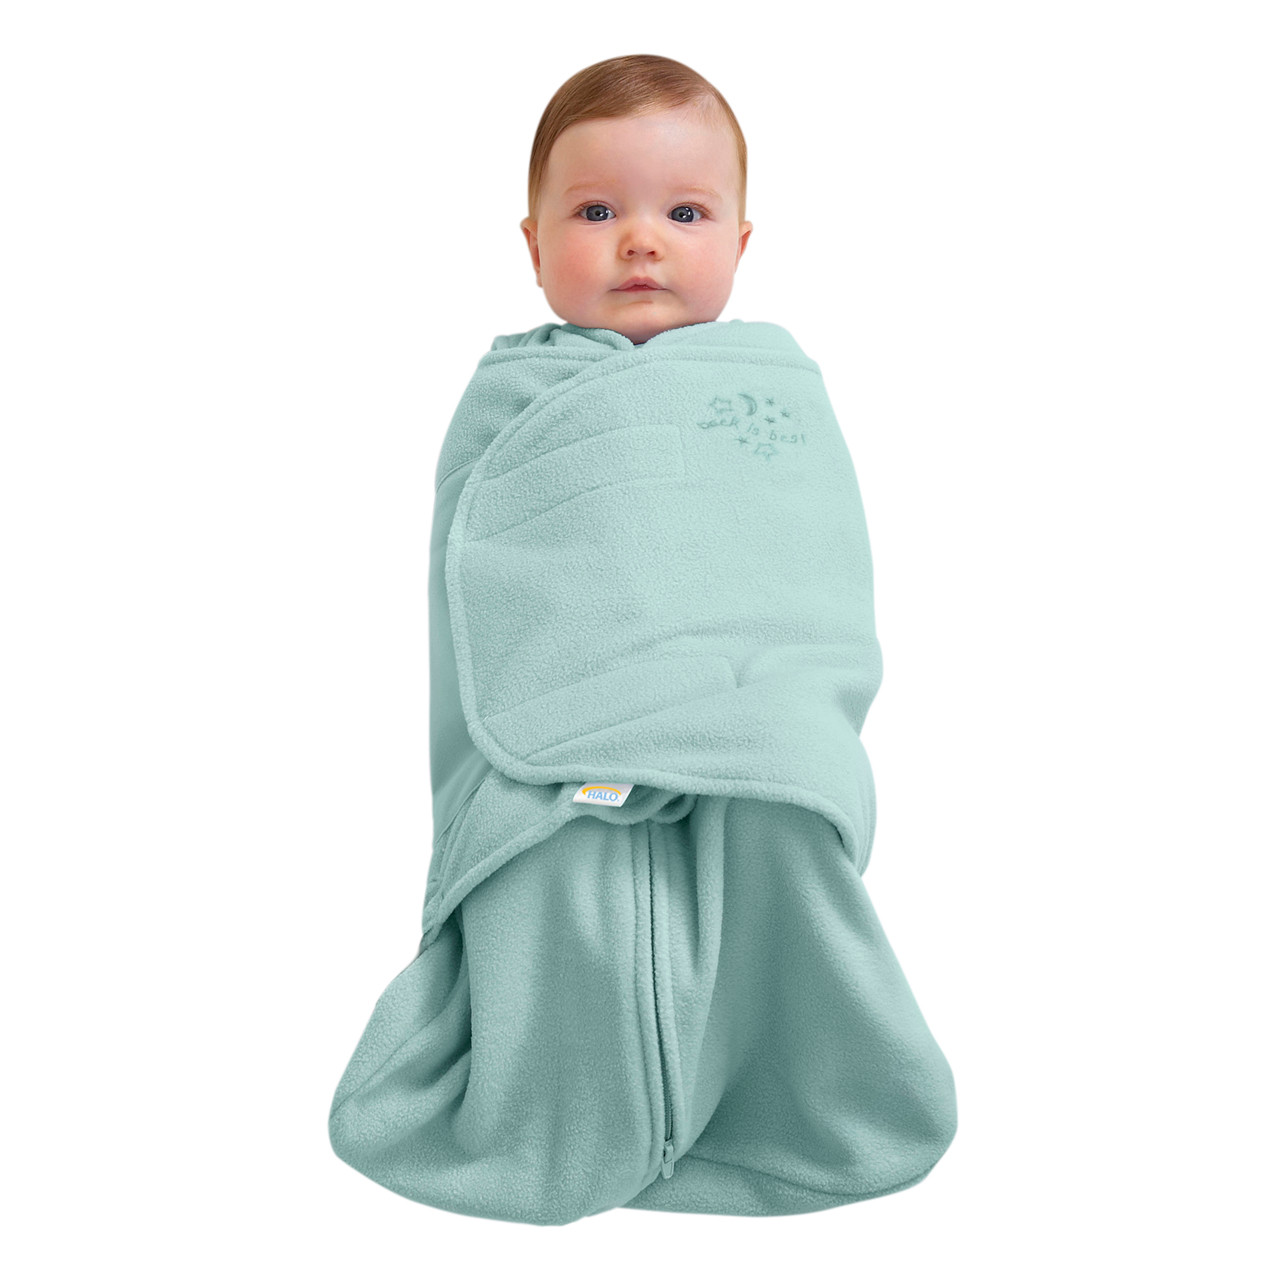 4833fd65e4 Microfleece SleepSack Swaddle - HALO Wearable Blanket